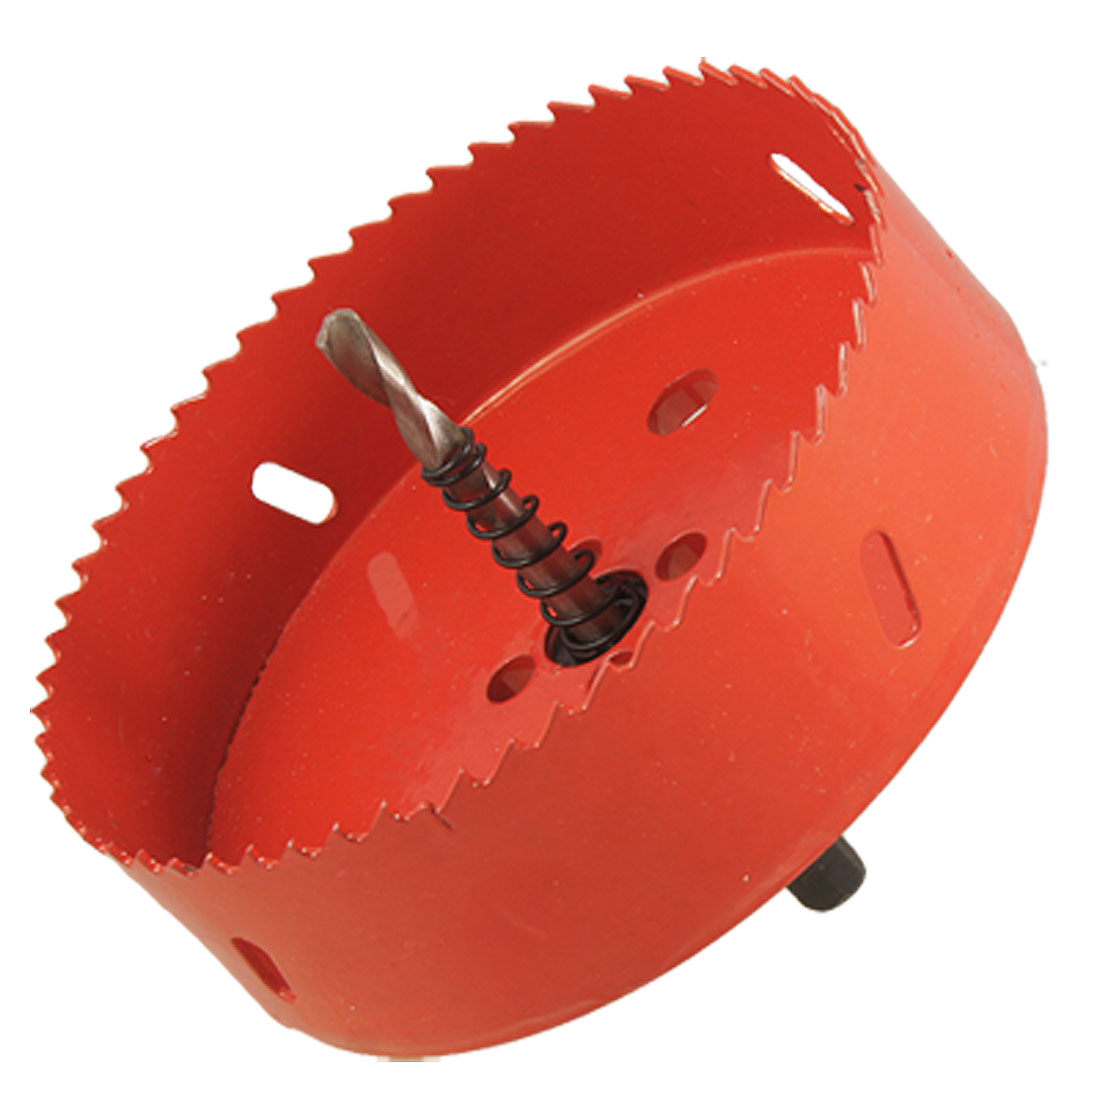 Drill Bit 120mm Long Red Metal Hole Saw Set for Drilling Wood